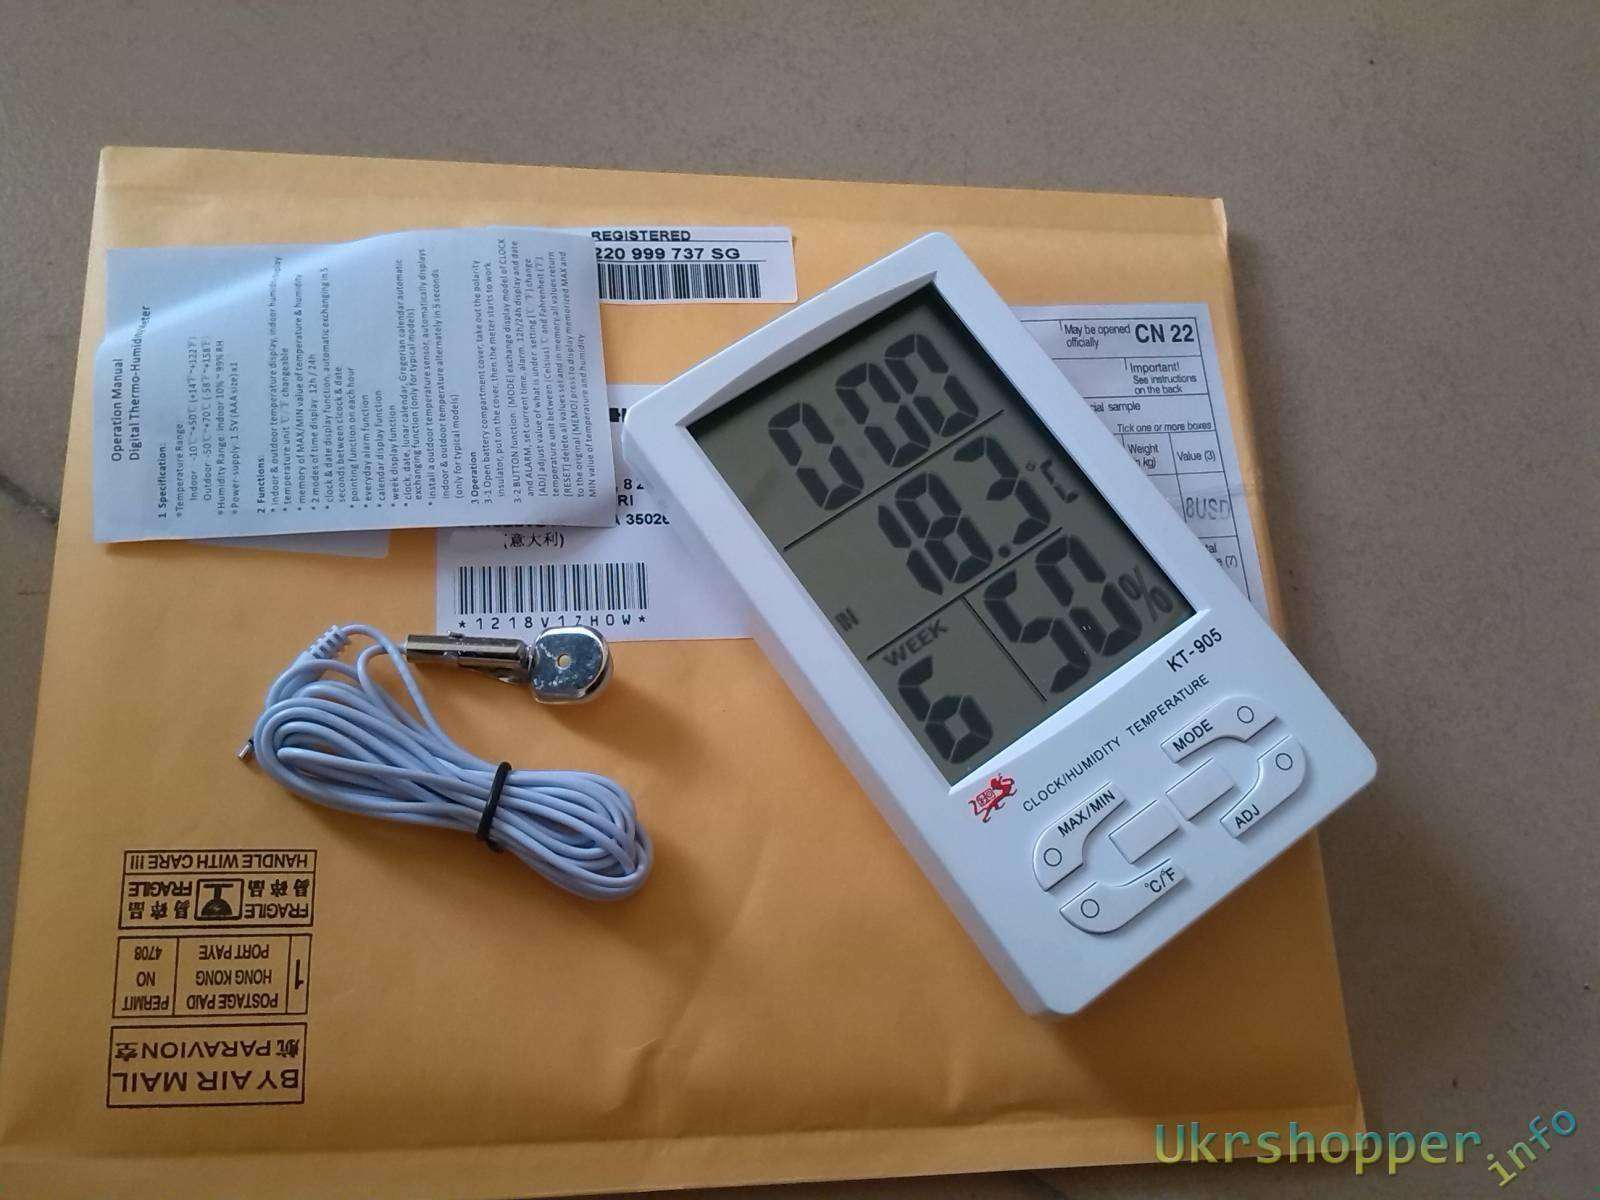 Aliexpress: 4.3' Digital LCD Humidity / Hygrometer and Thermometer with Extra Sensor Cable (1*AAA included)